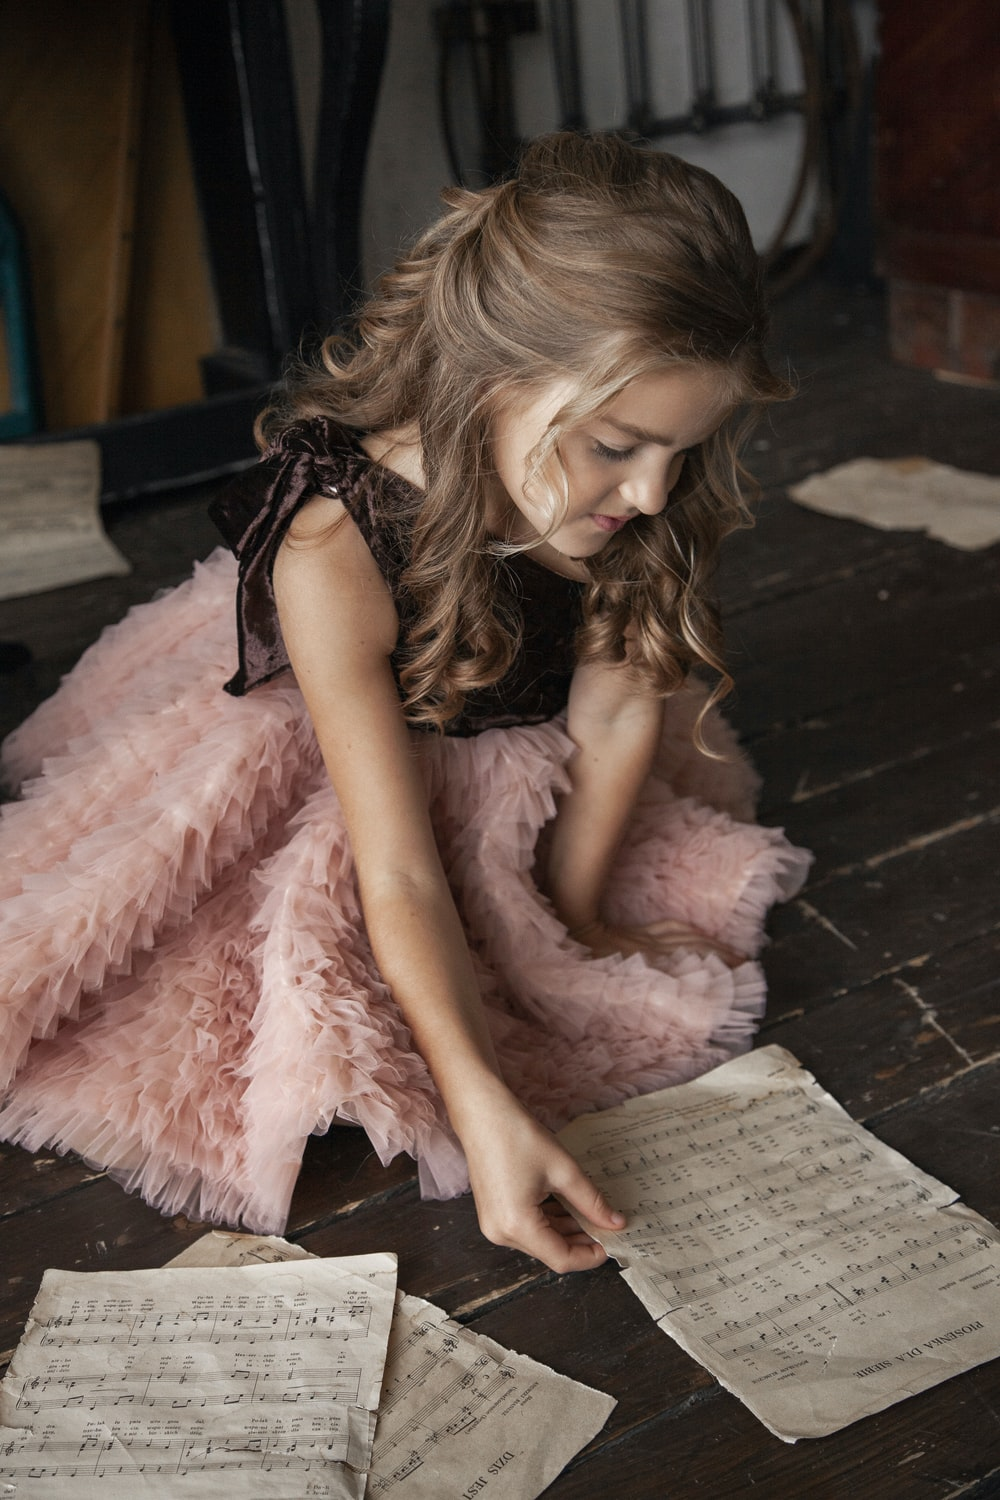 crouching girl wearing pink and black dress holding sheet